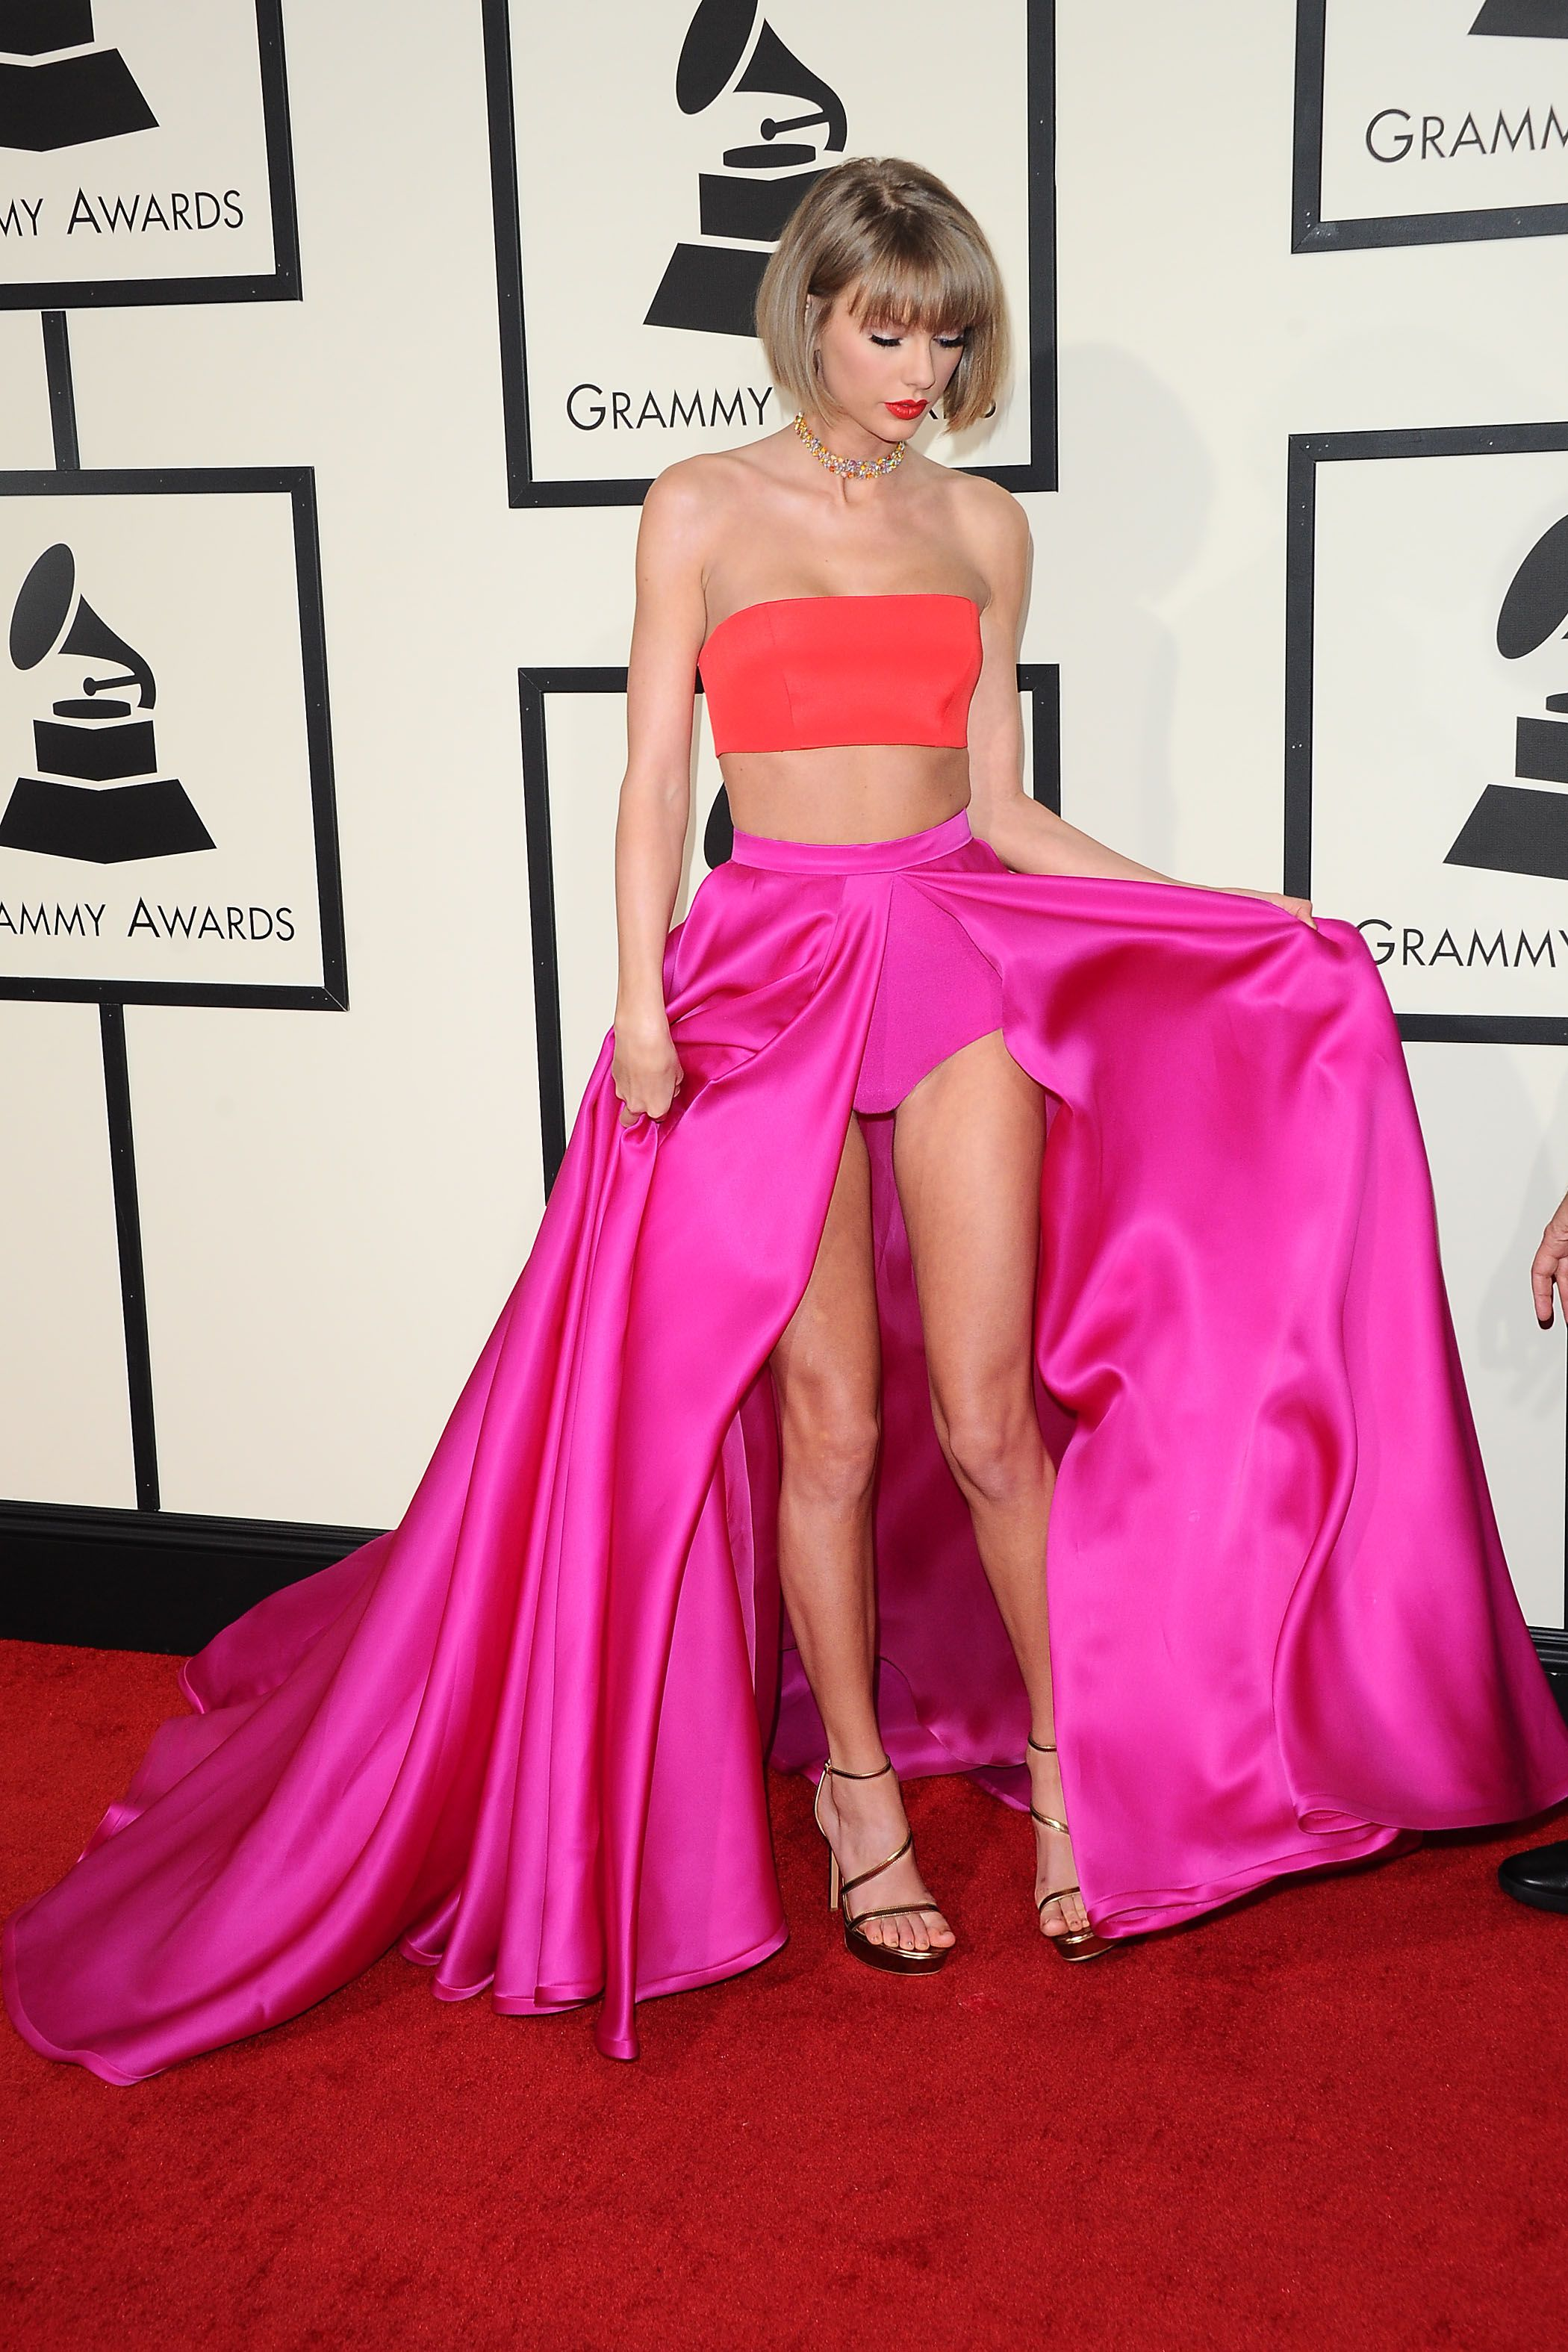 Taylor Is The Most Beautiful At 2016 Grammys Taylor Swift Dress Long Live Taylor Swift Taylor Swift Style